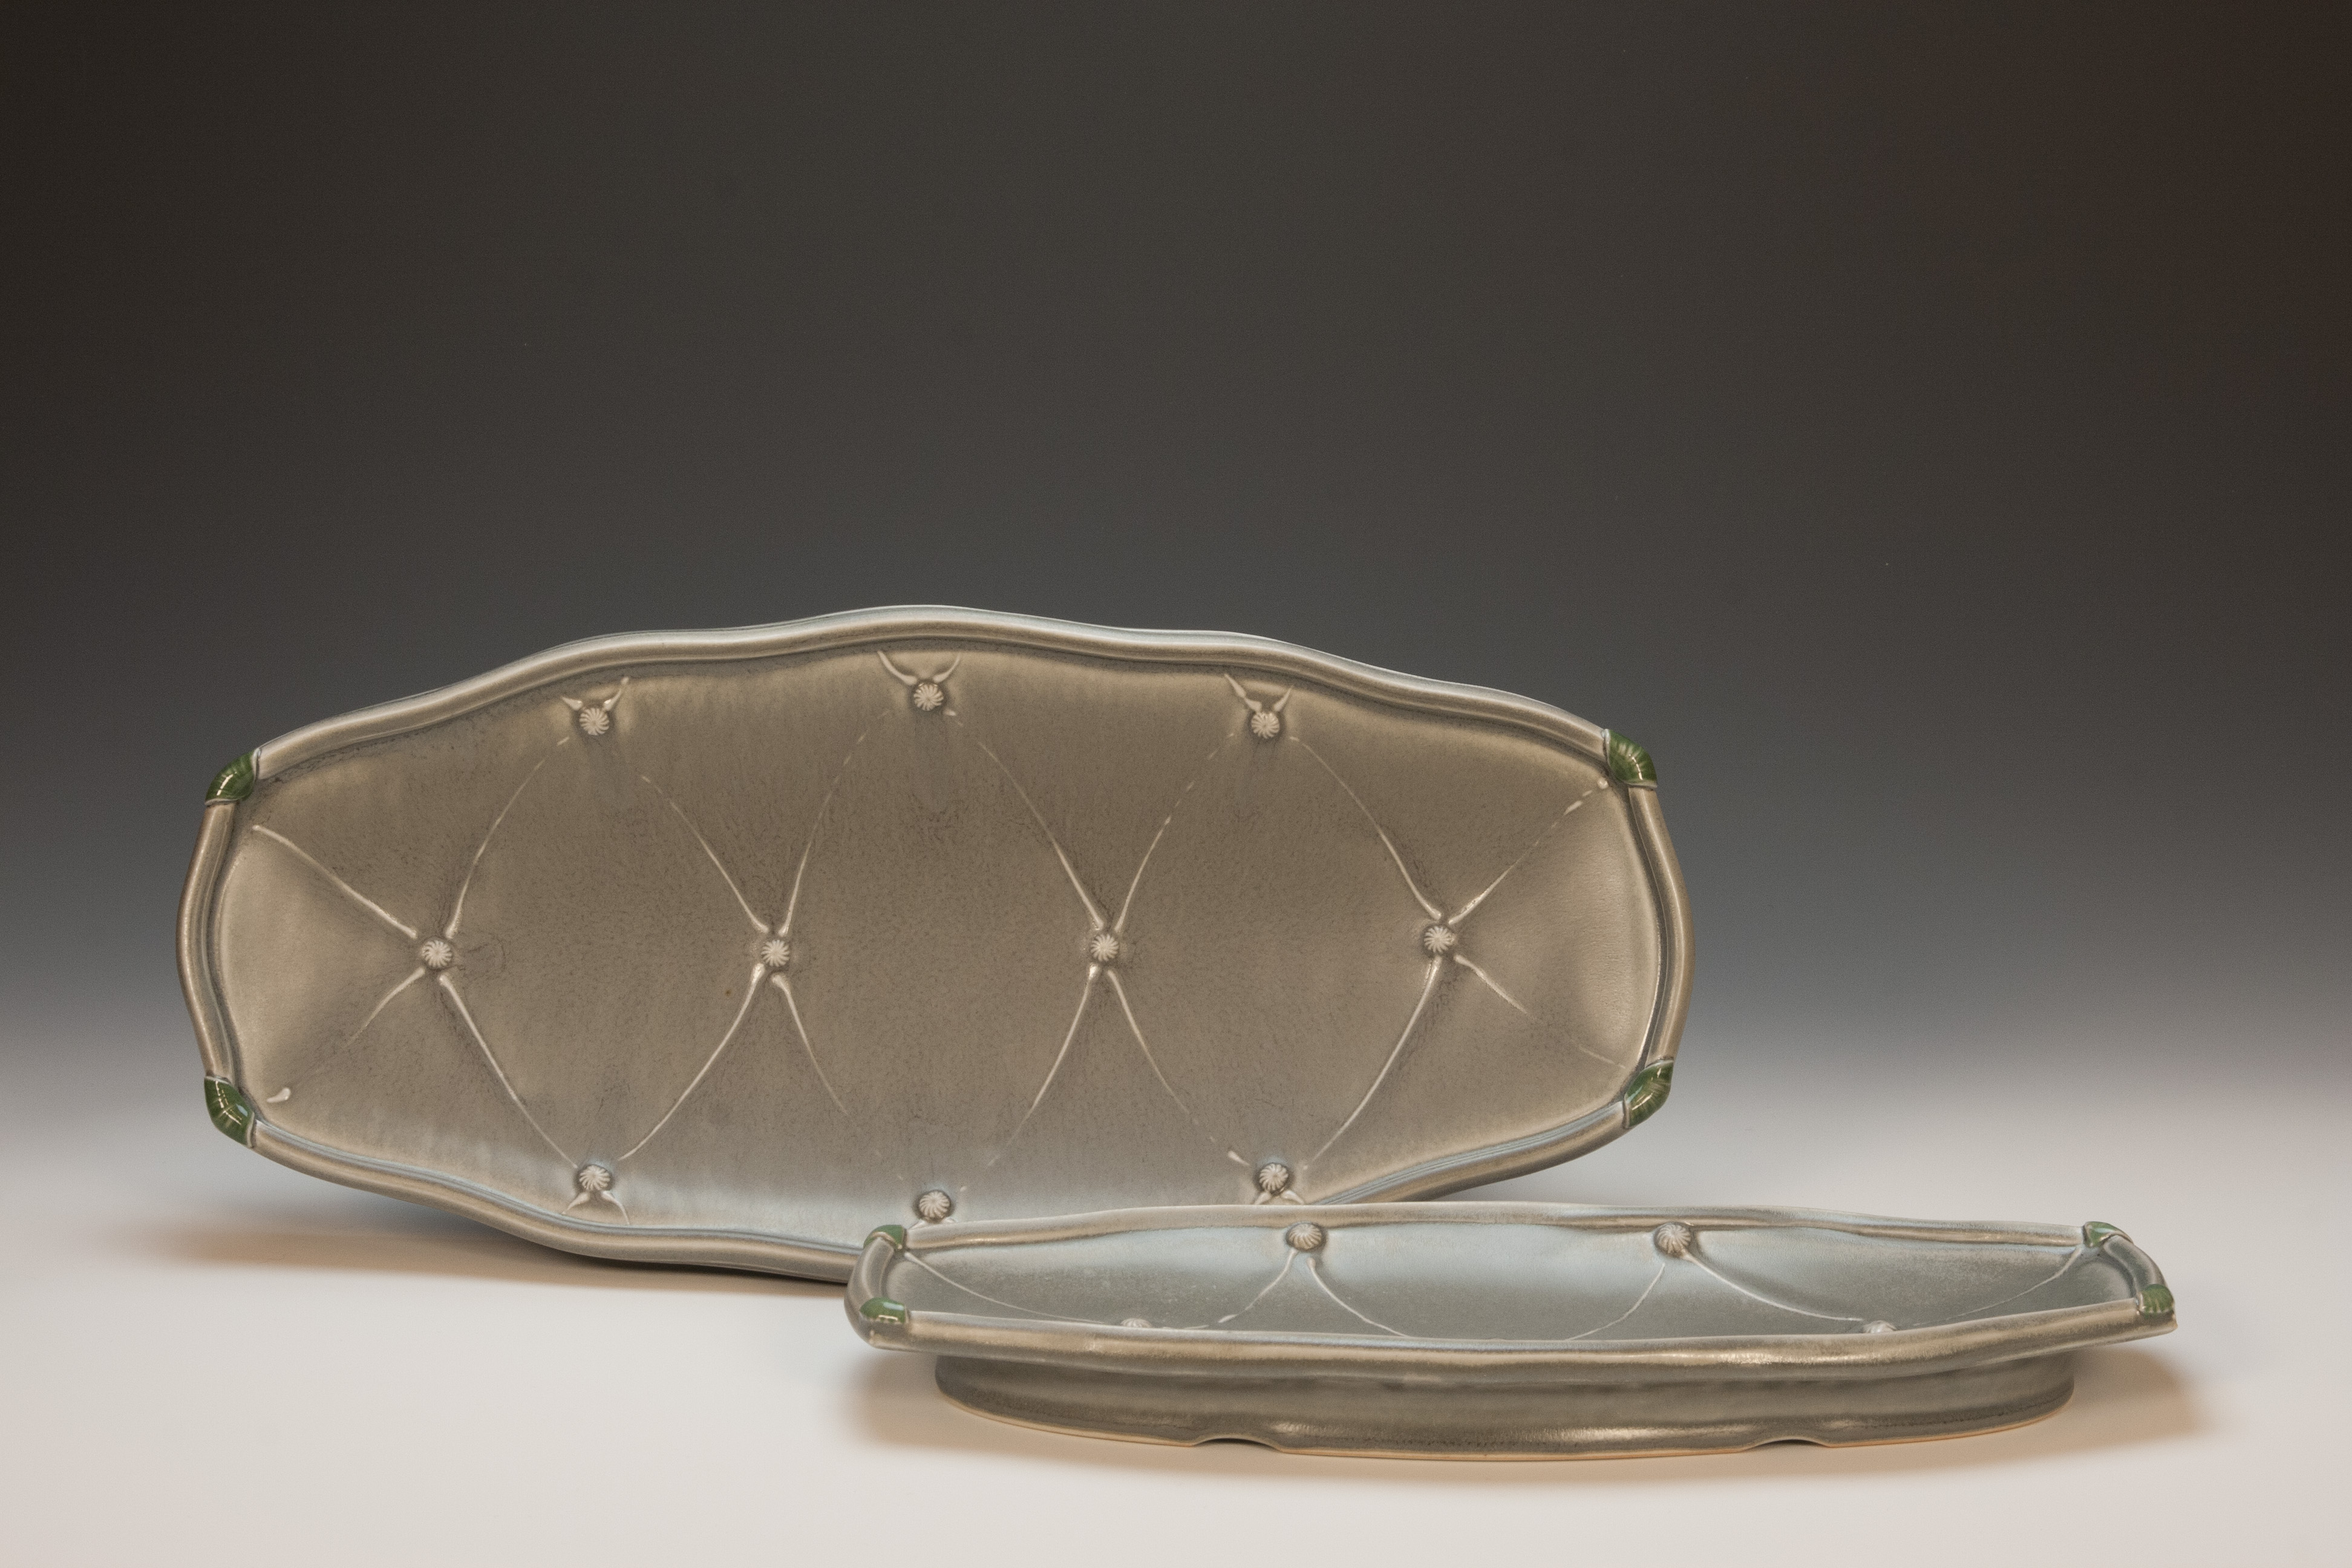 Pair of Wavy Trays